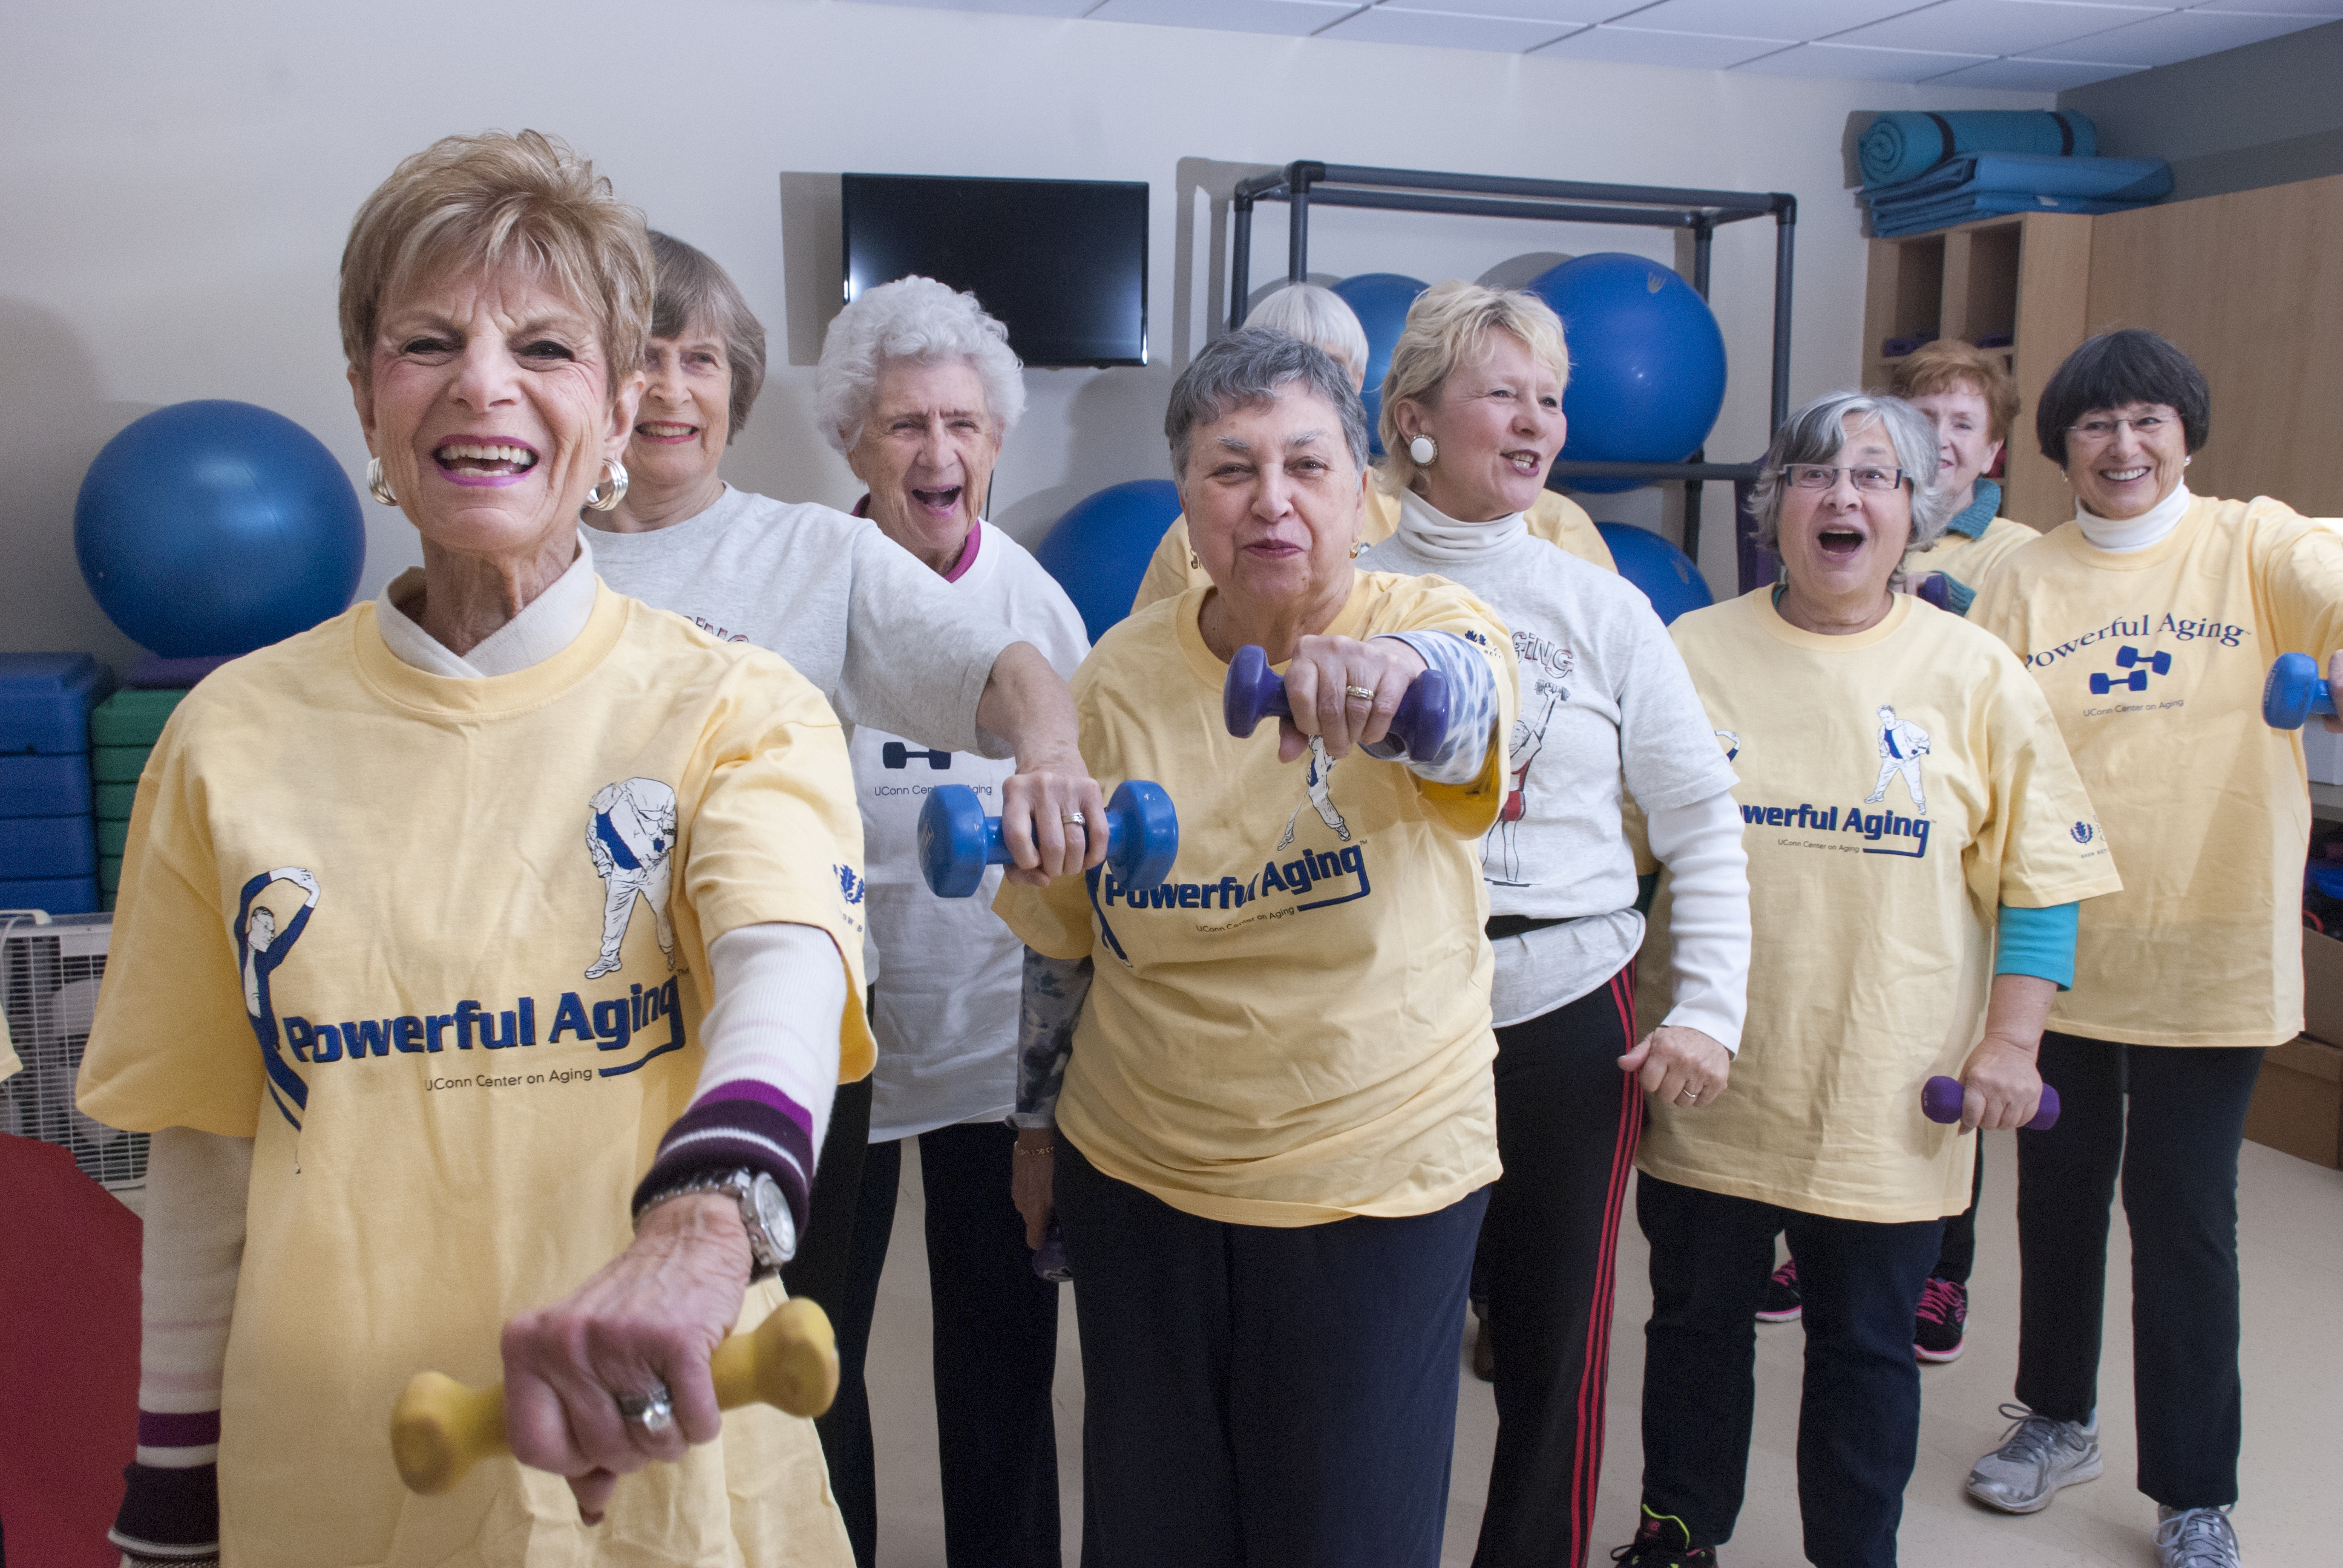 Powerful Aging Exercise Class